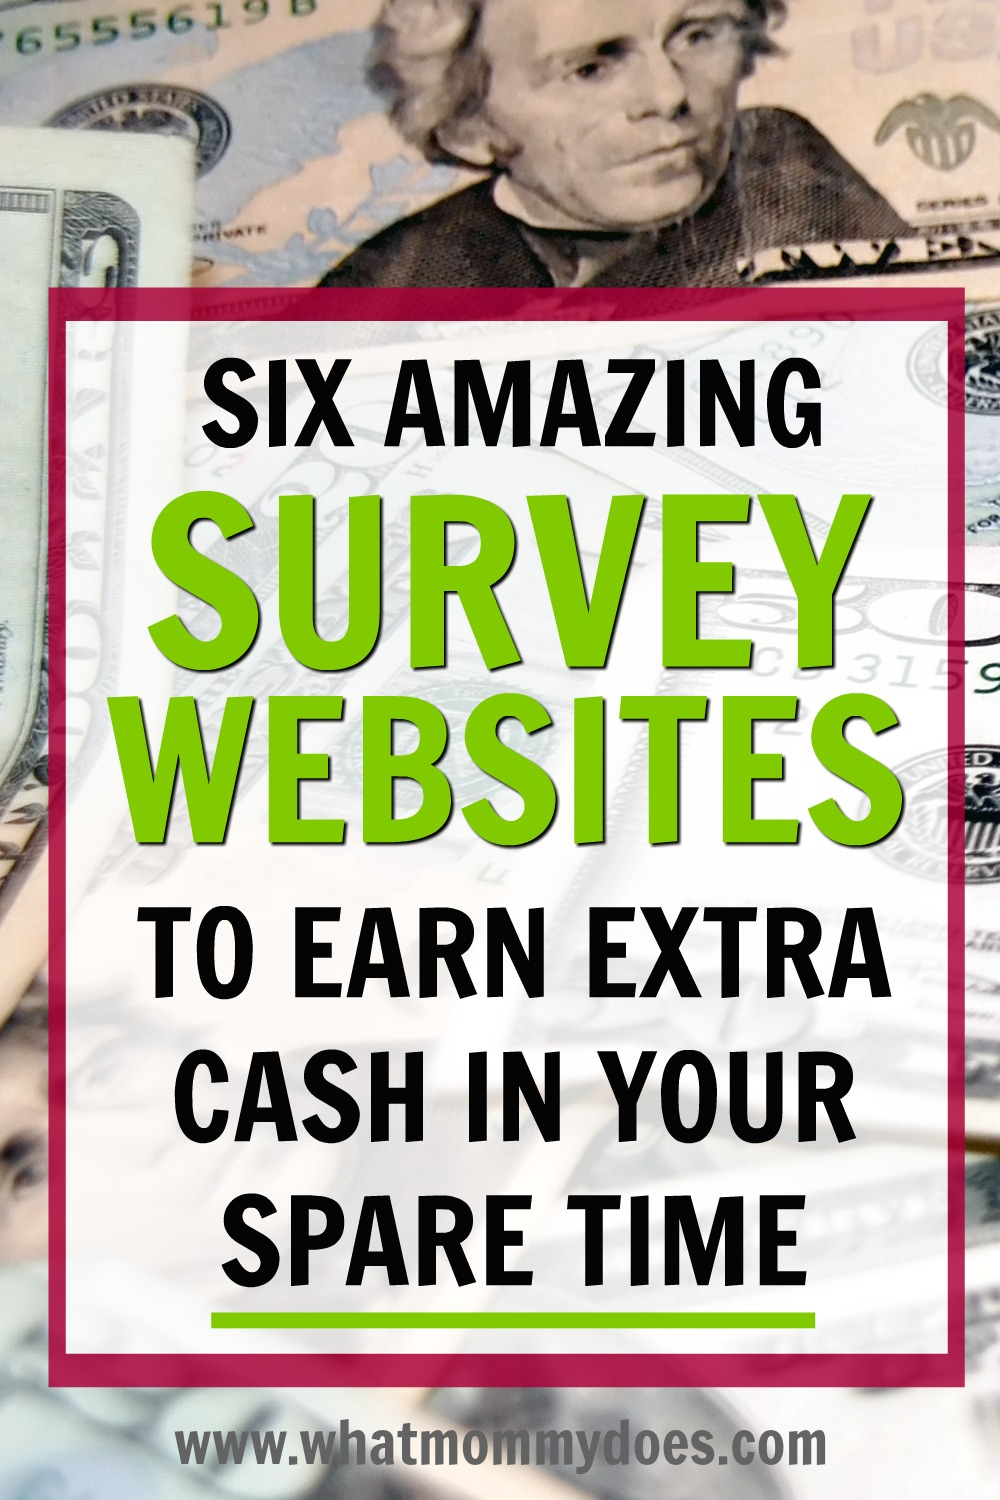 Looking for a way to make extra money each month that doesn't require a lot of work up front? Online survey sites are perfect for this!!! These are the best 6 free survey websites according to my rep - you can make extra cash answering questions & giving your opinion in your spare time. Goodness knows, you could even earn extra money while you're standing in line at the grocery store! | quick money making ideas, extra money monthly, easy side gigs